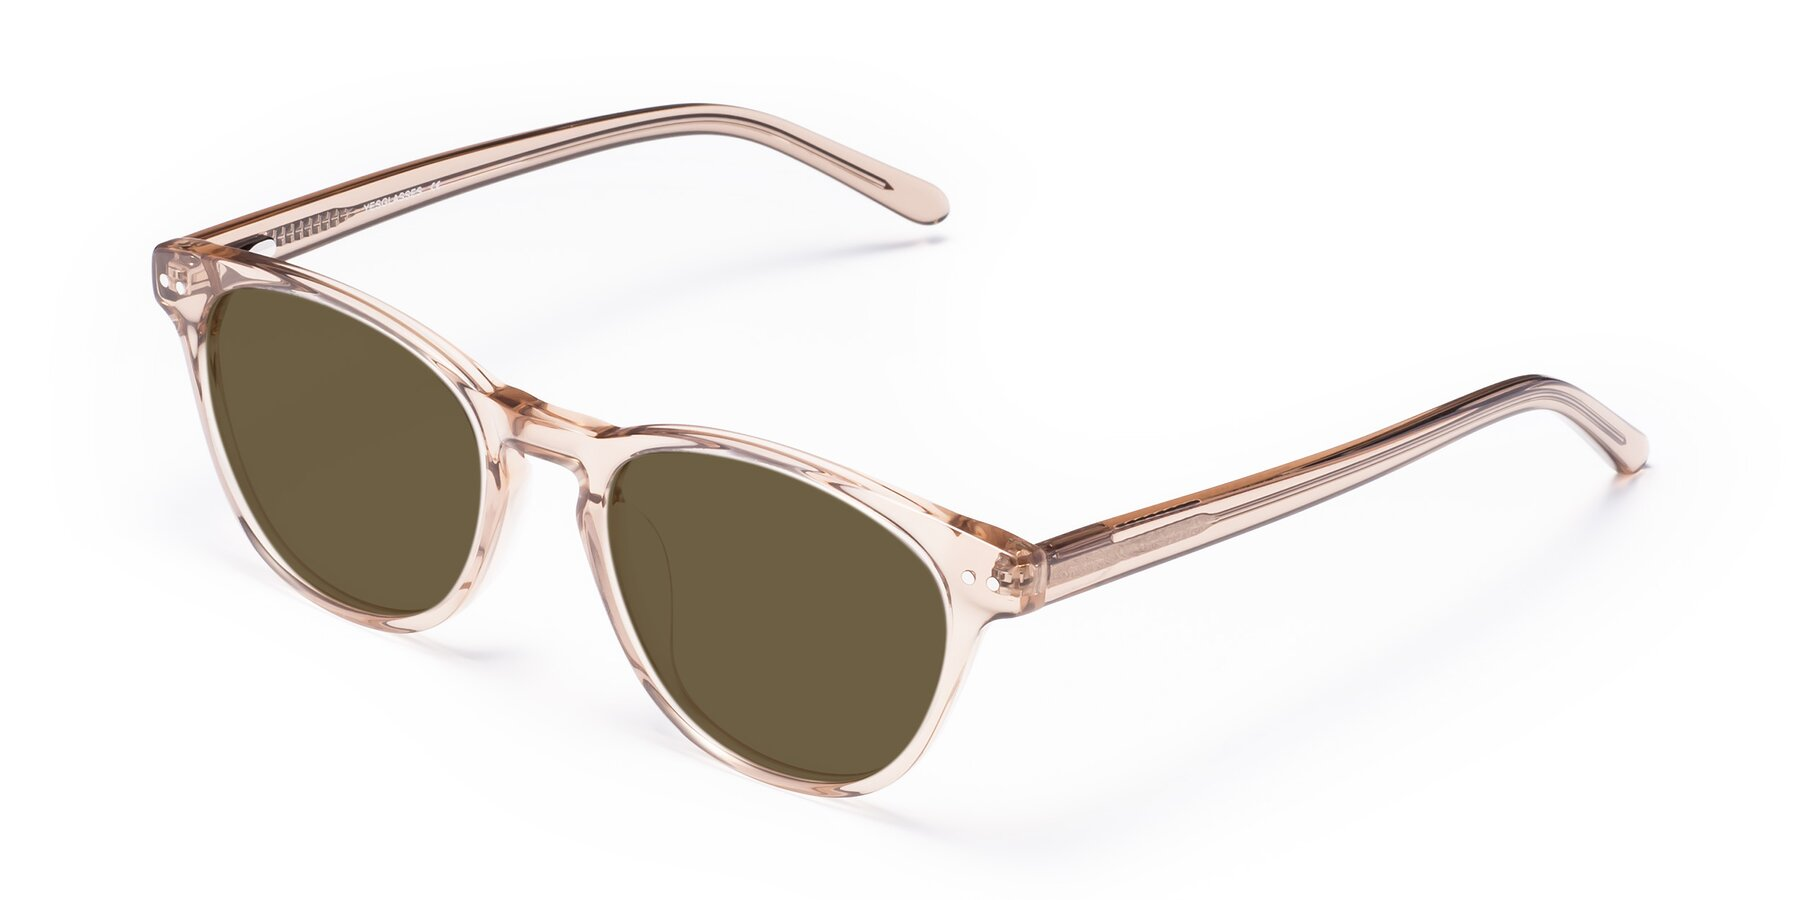 Angle of Blaze in light Brown with Brown Polarized Lenses